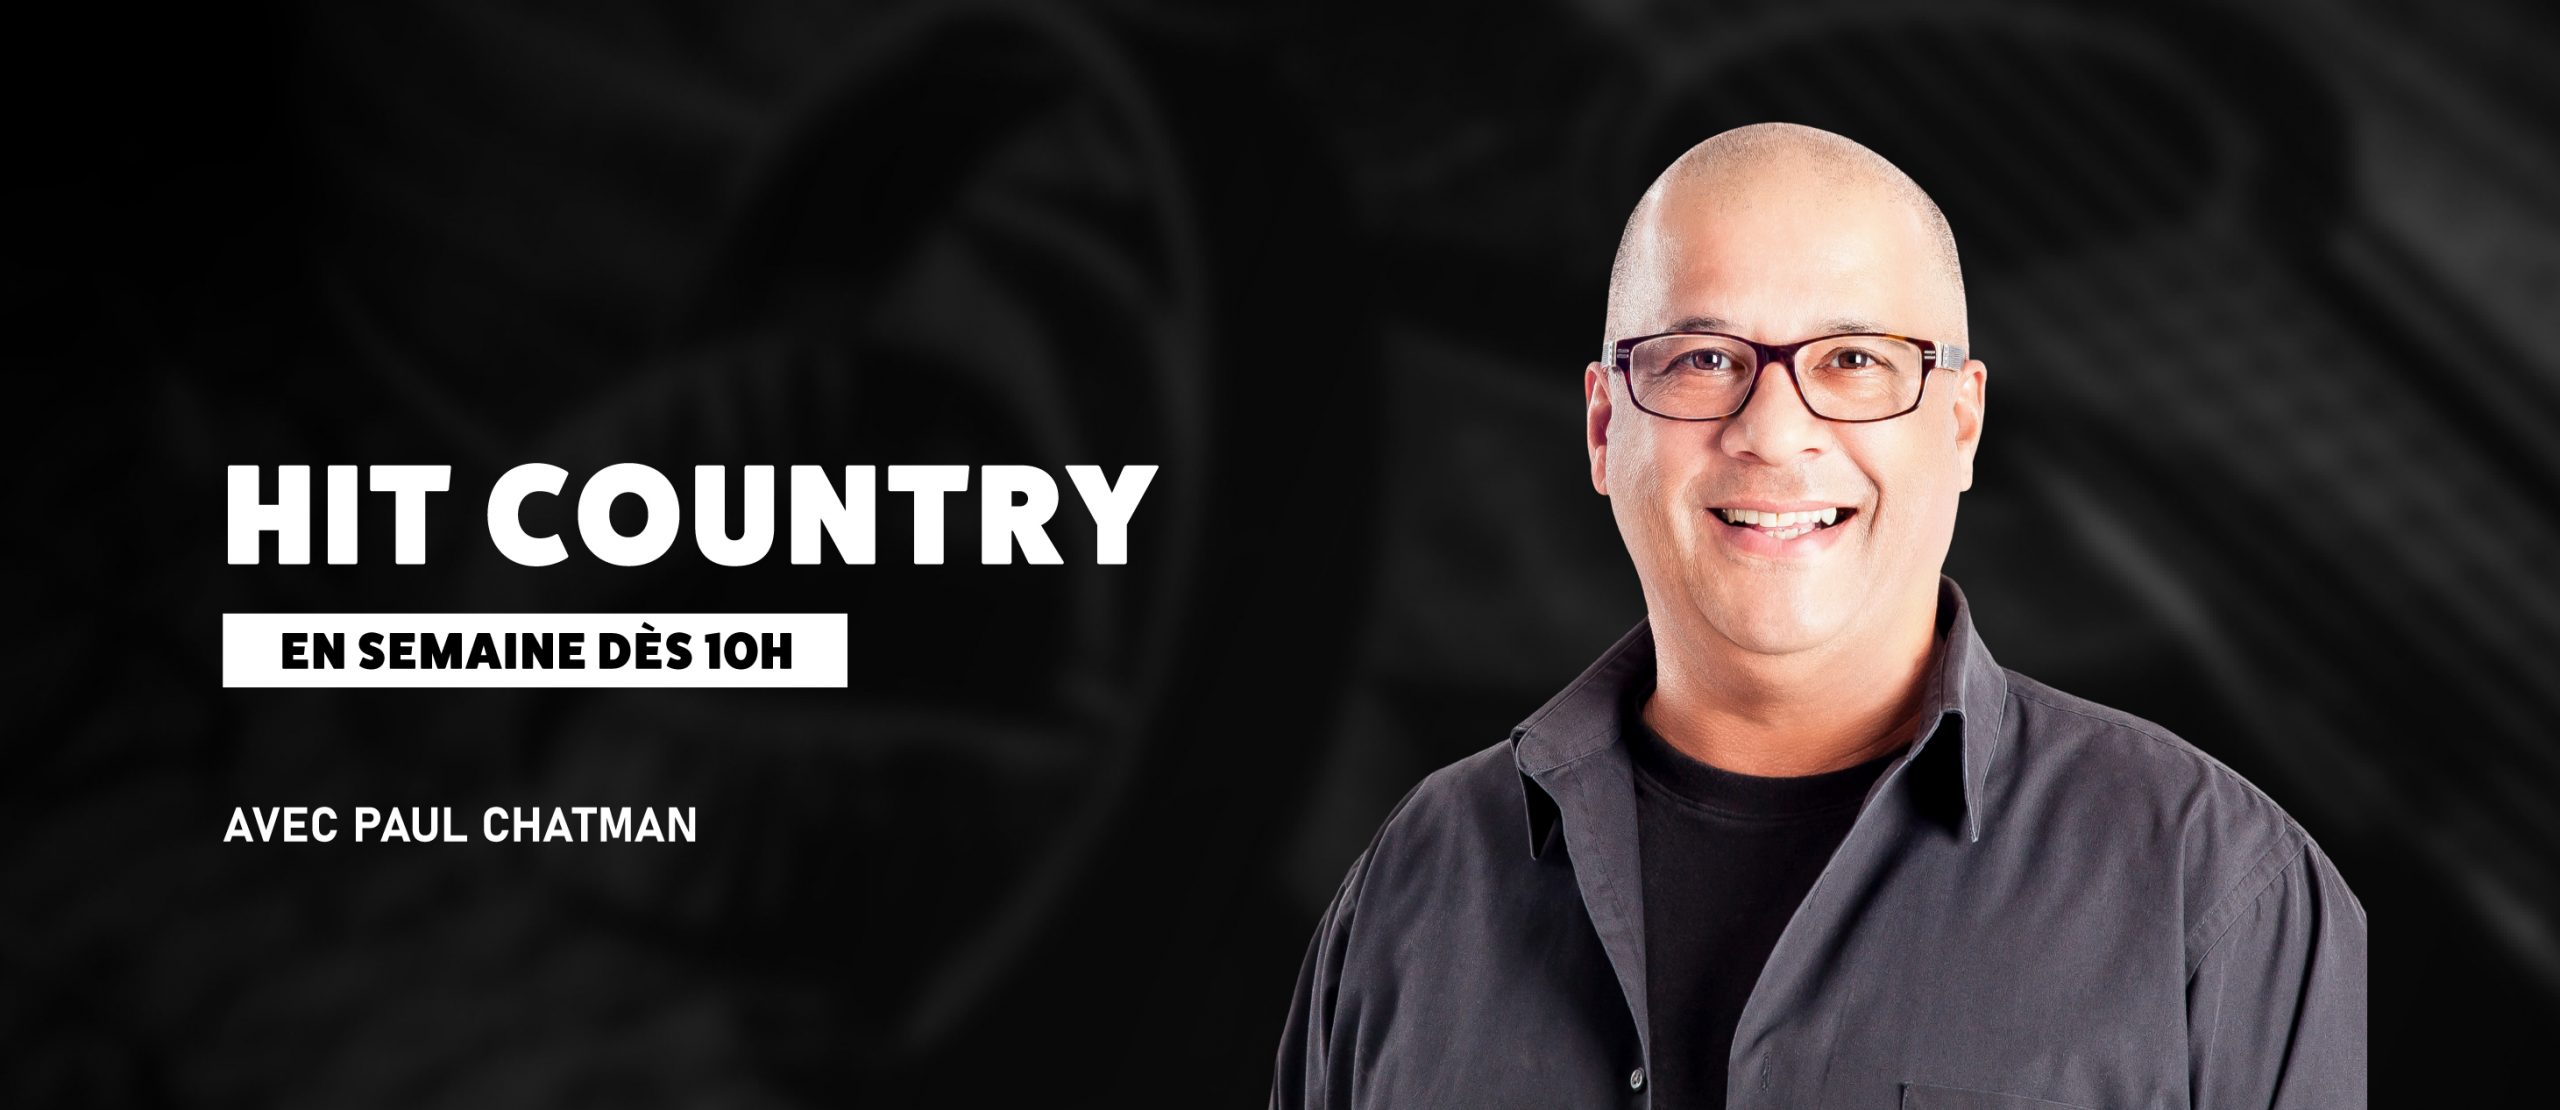 HITCOUNTRY-PAUL